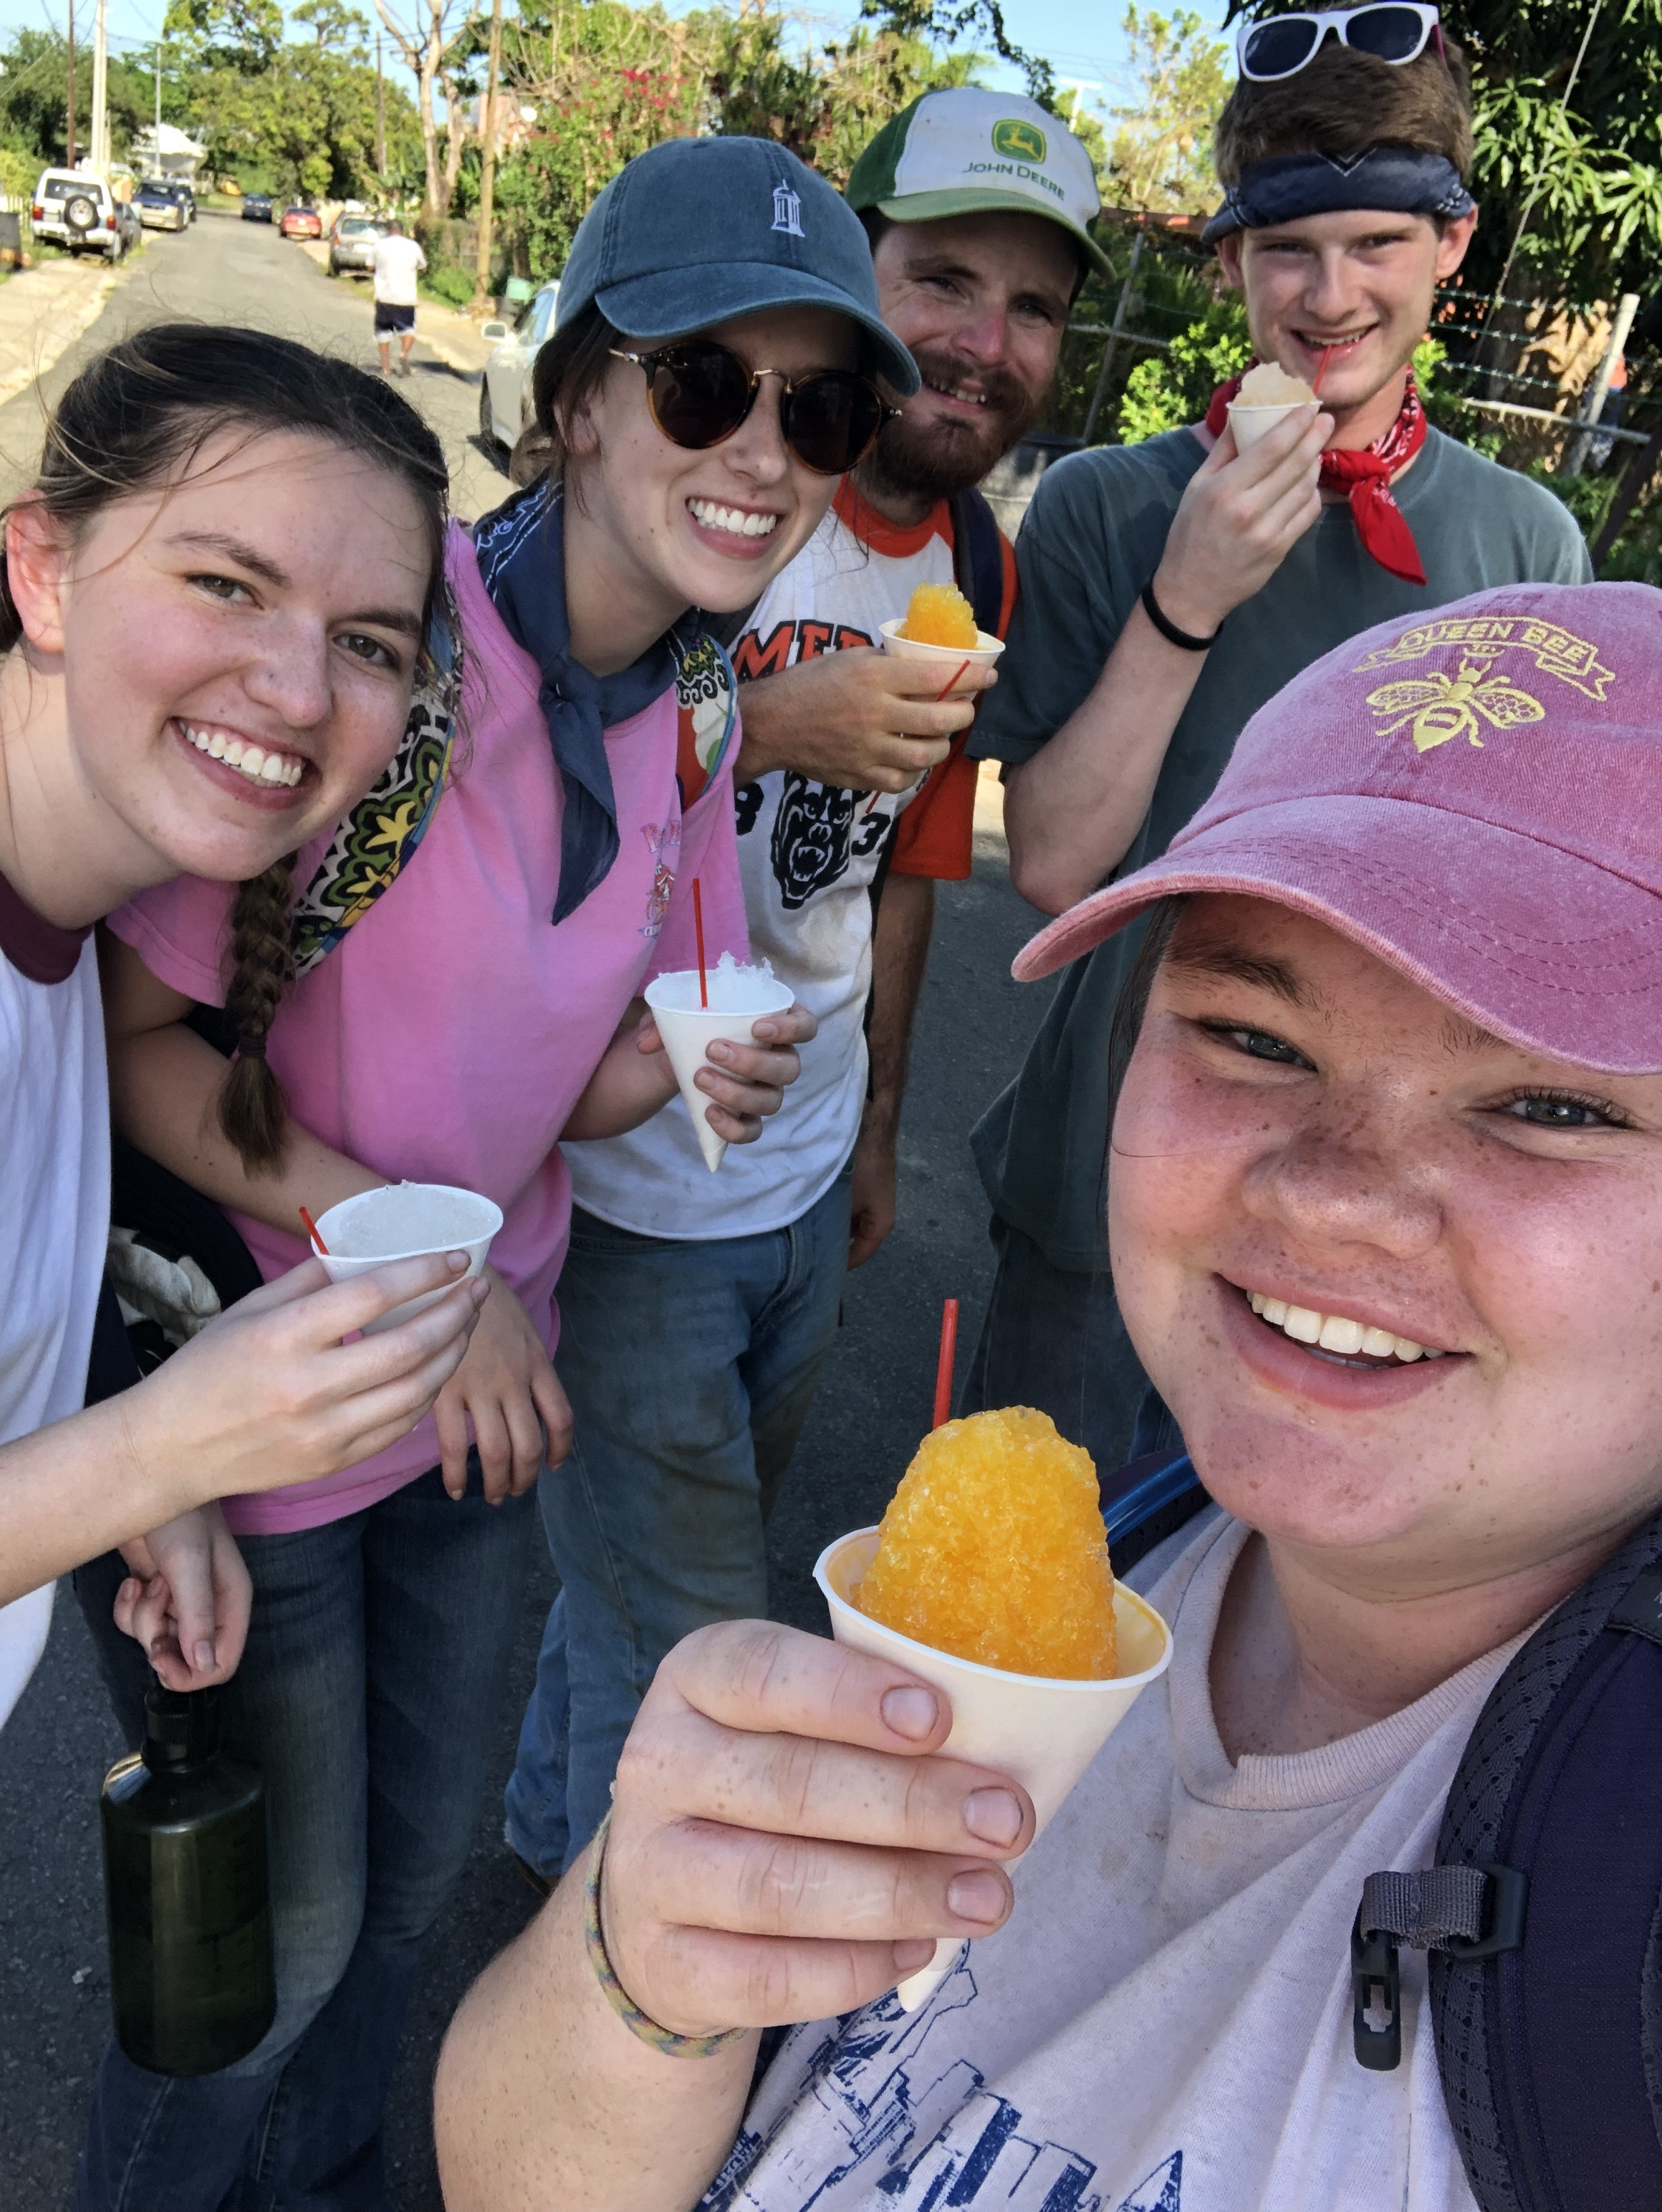 Lindsey Baird, Tatum Connell, JT Mercer, Richard White, and Becca Lamb smile as they got surprise snow cones from a local vendor after a long and hot day of work